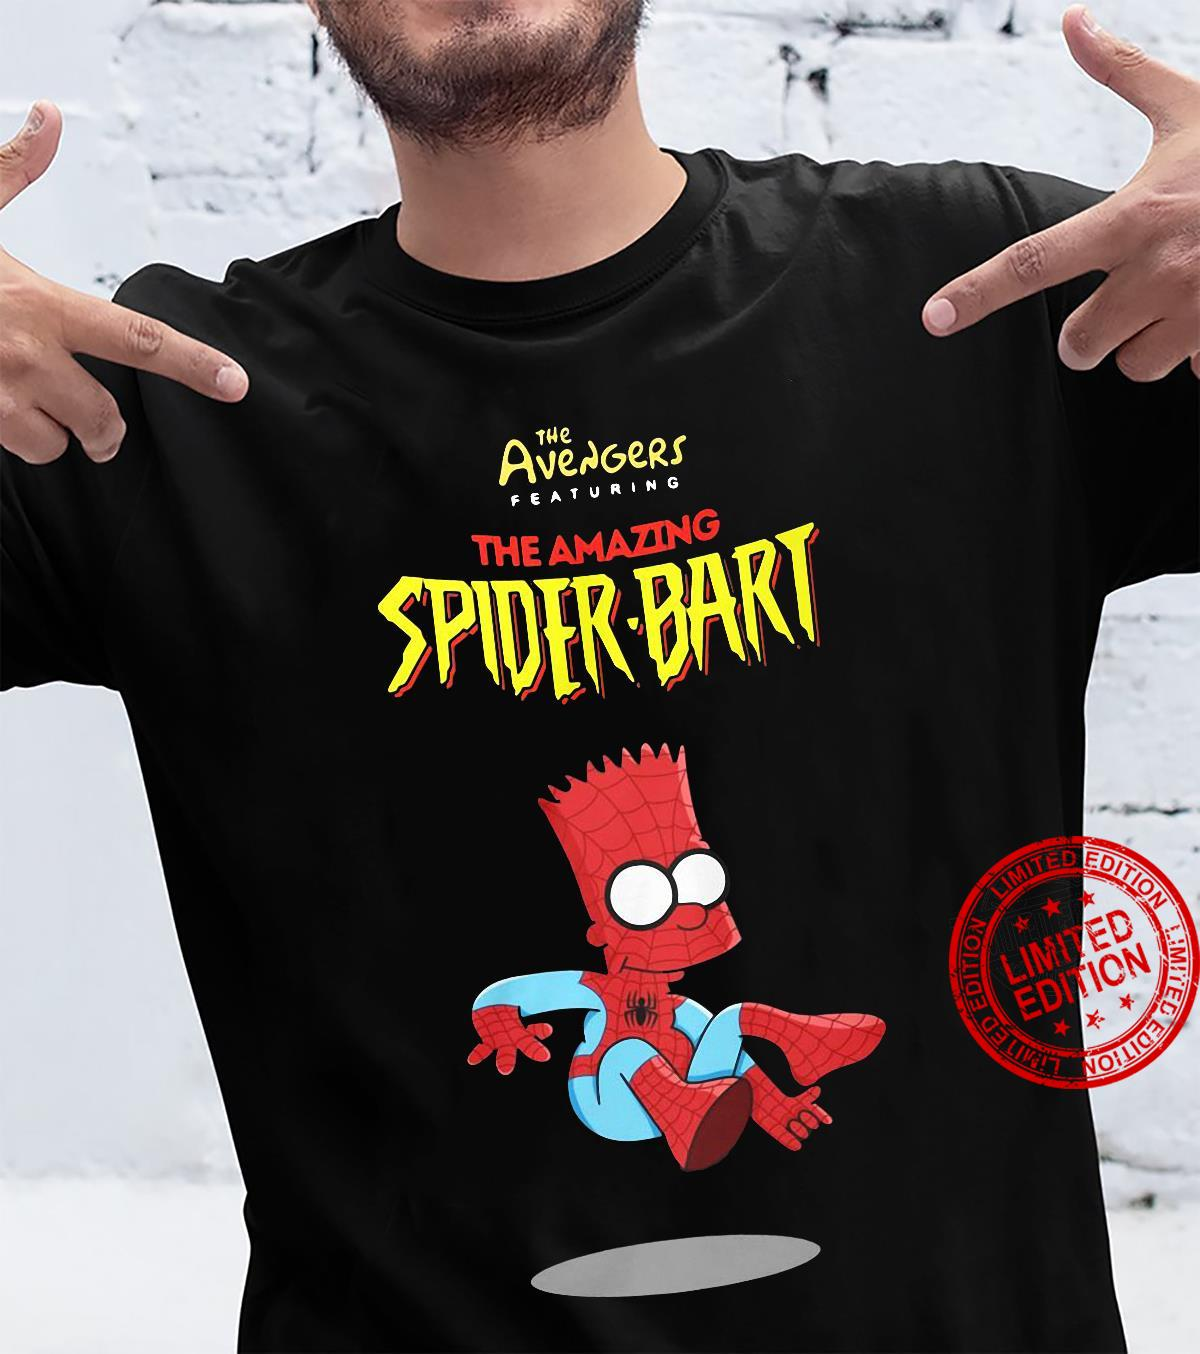 The Avengers Peaturing The Amazing Spider-Bart shirt